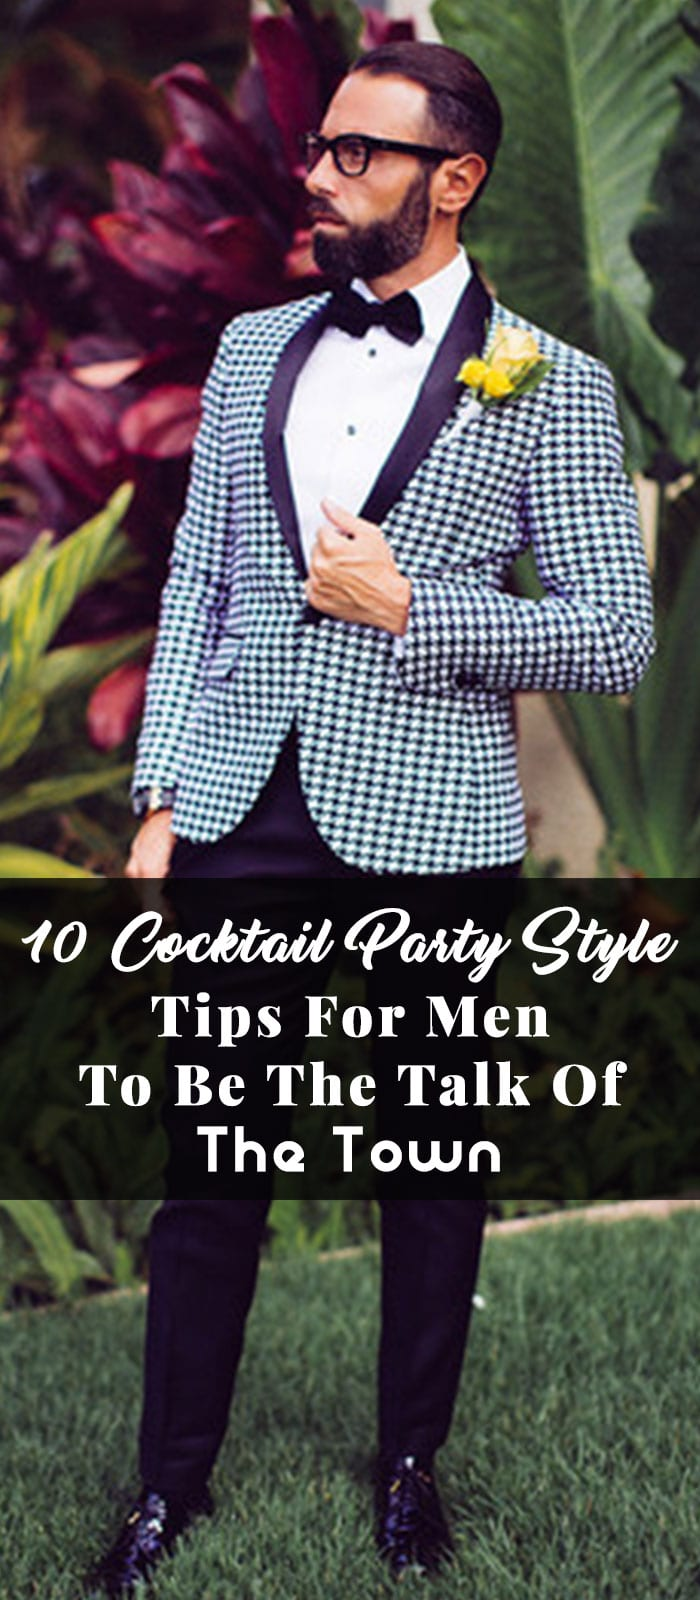 10 Cocktail Party Style Tips For Men To Be The Talk Of The Town